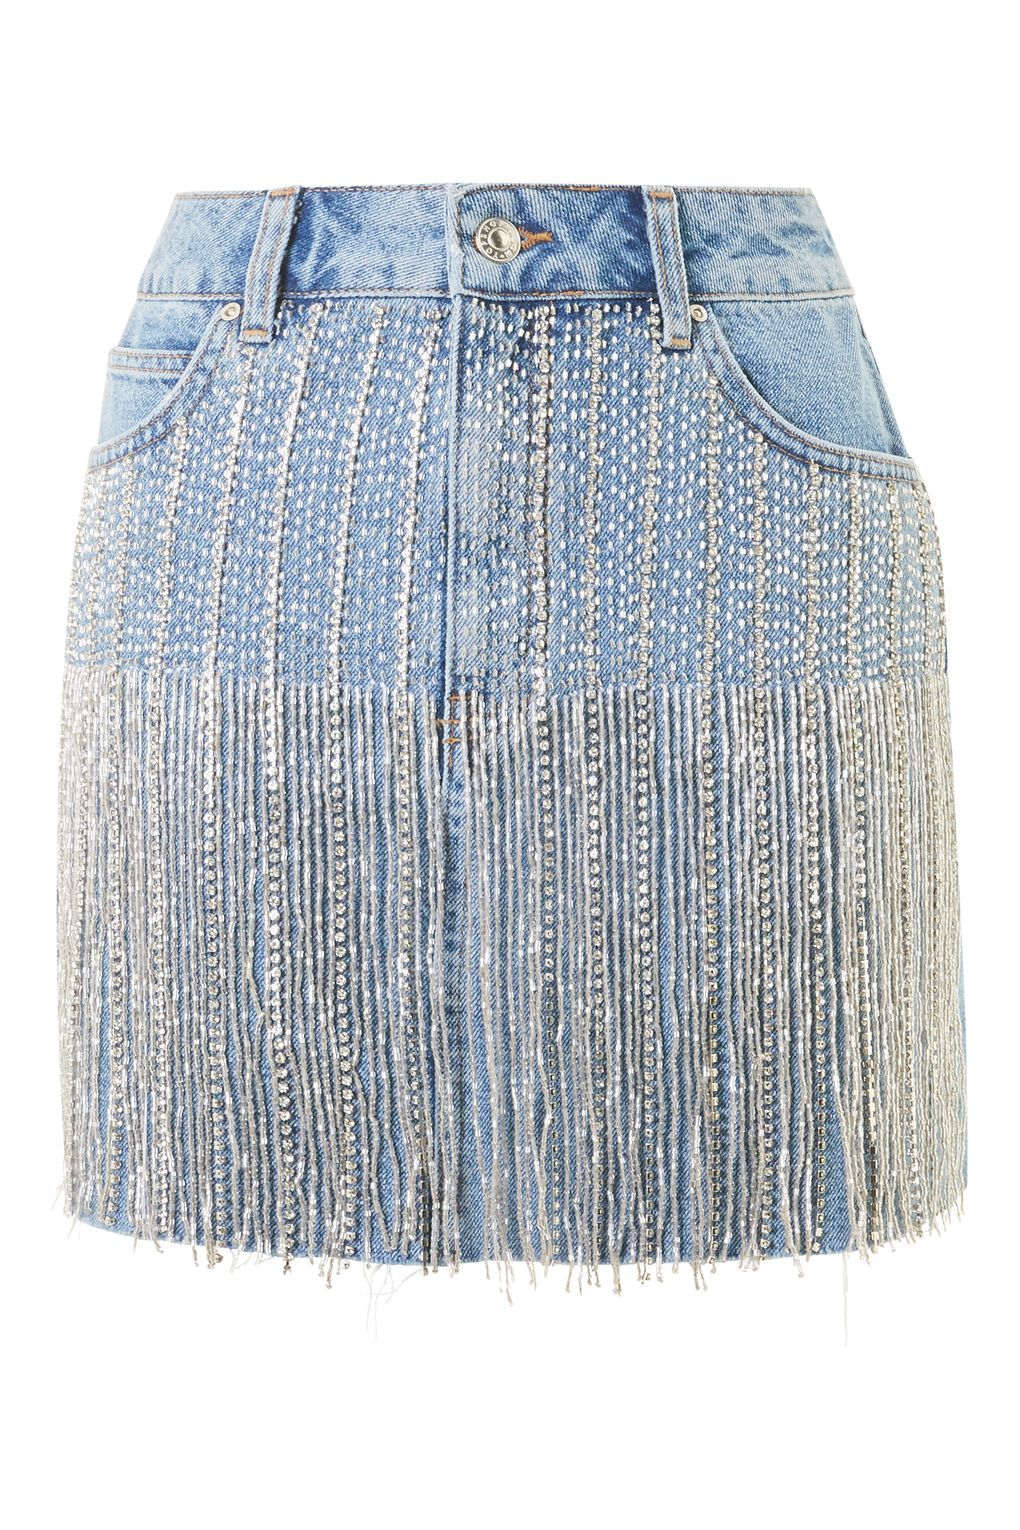 35c78b9215b MOTO Dazzle Fringe Denim Skirt in 2019